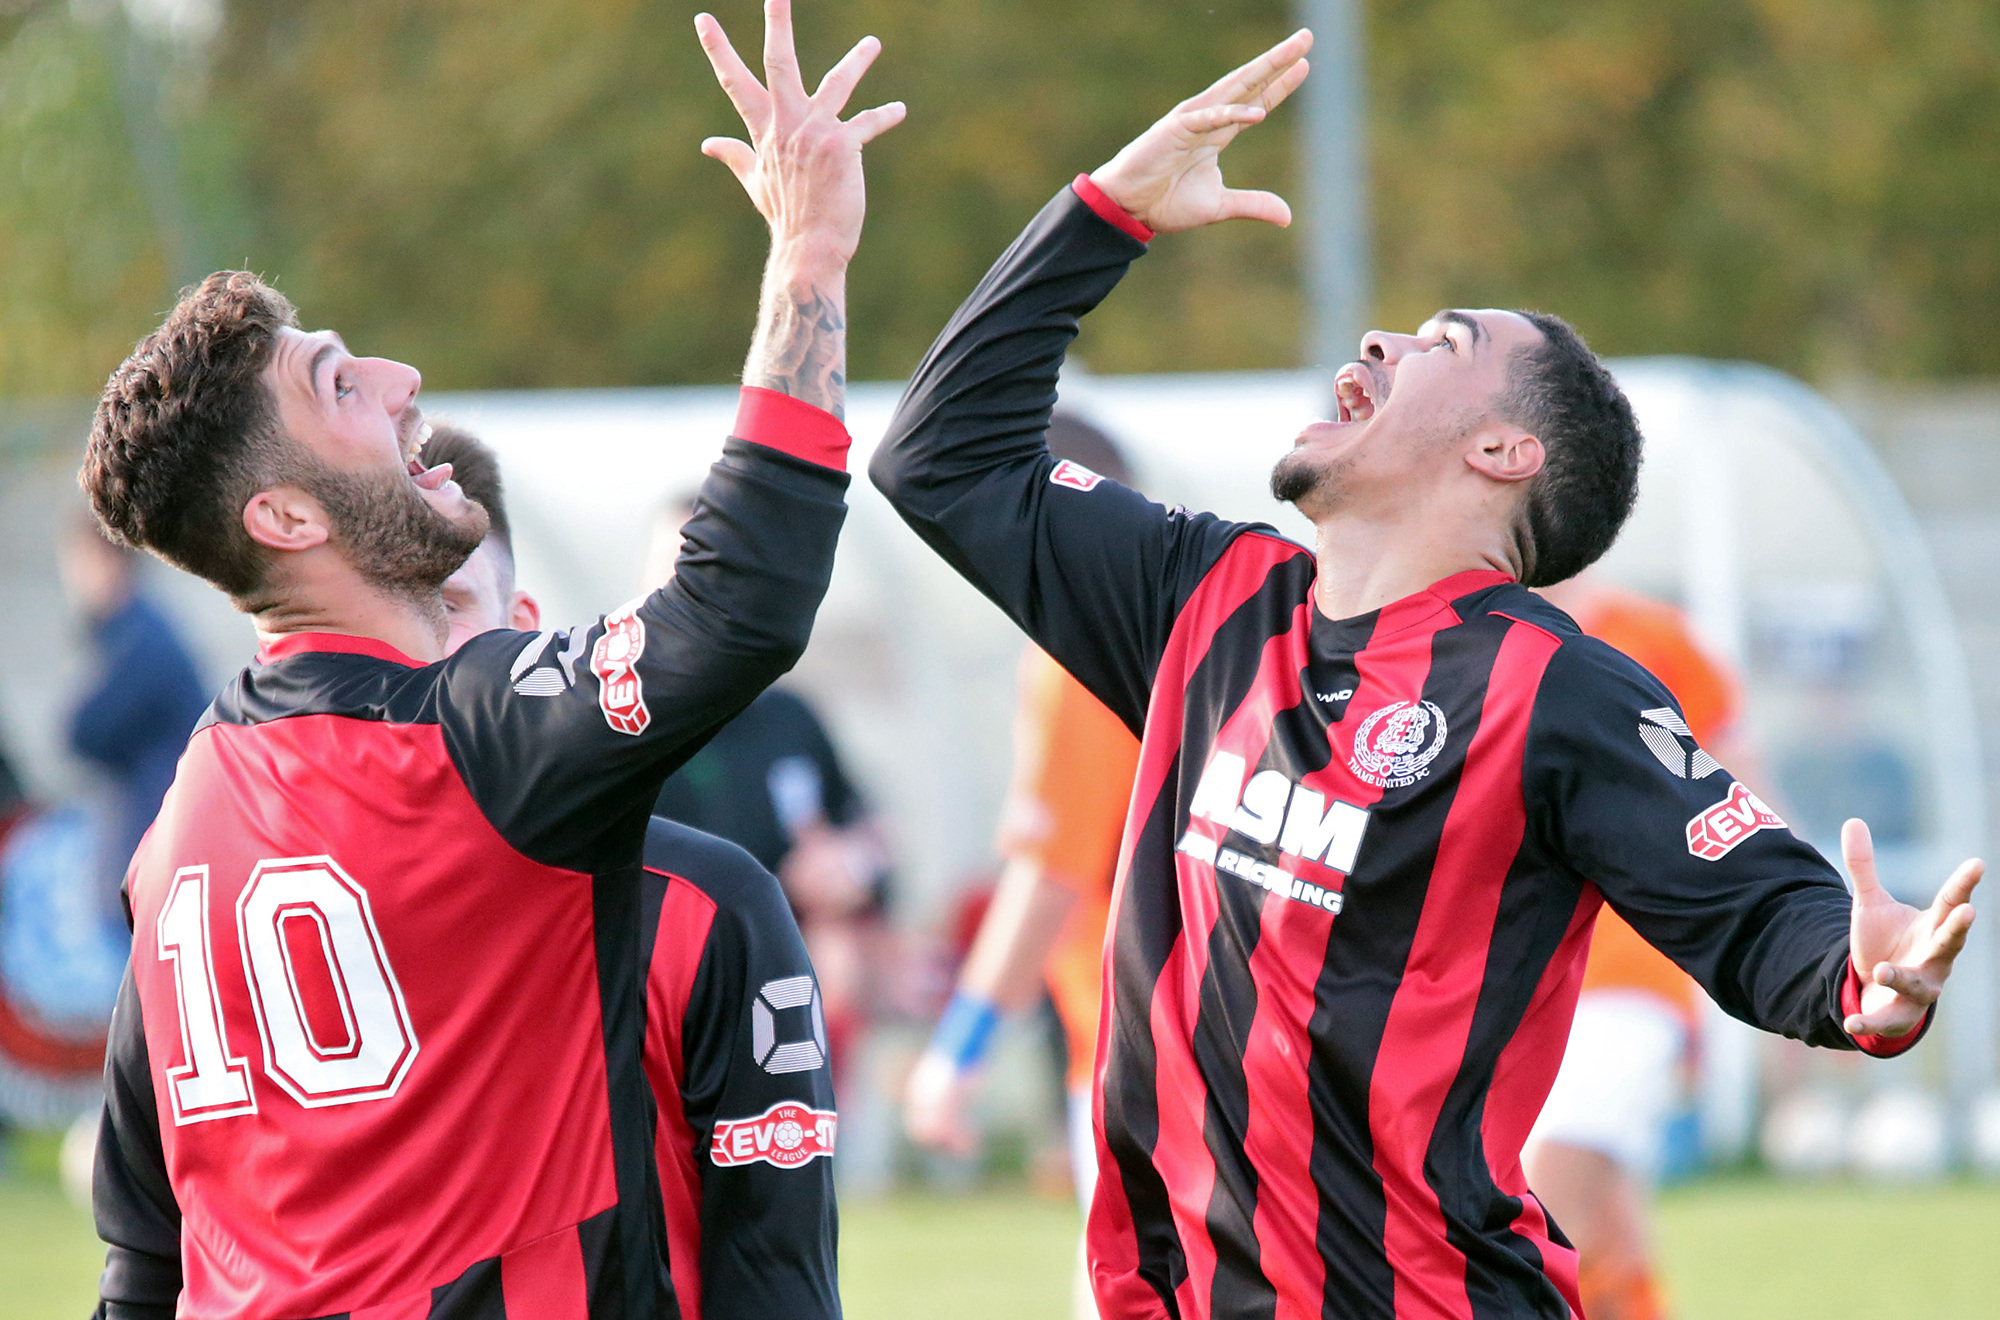 Lynton Goss celebrates his hat-trick with strike partner Dan West (10) in Thame's 5-0 win against Wimborne Picture: Ric Mellis